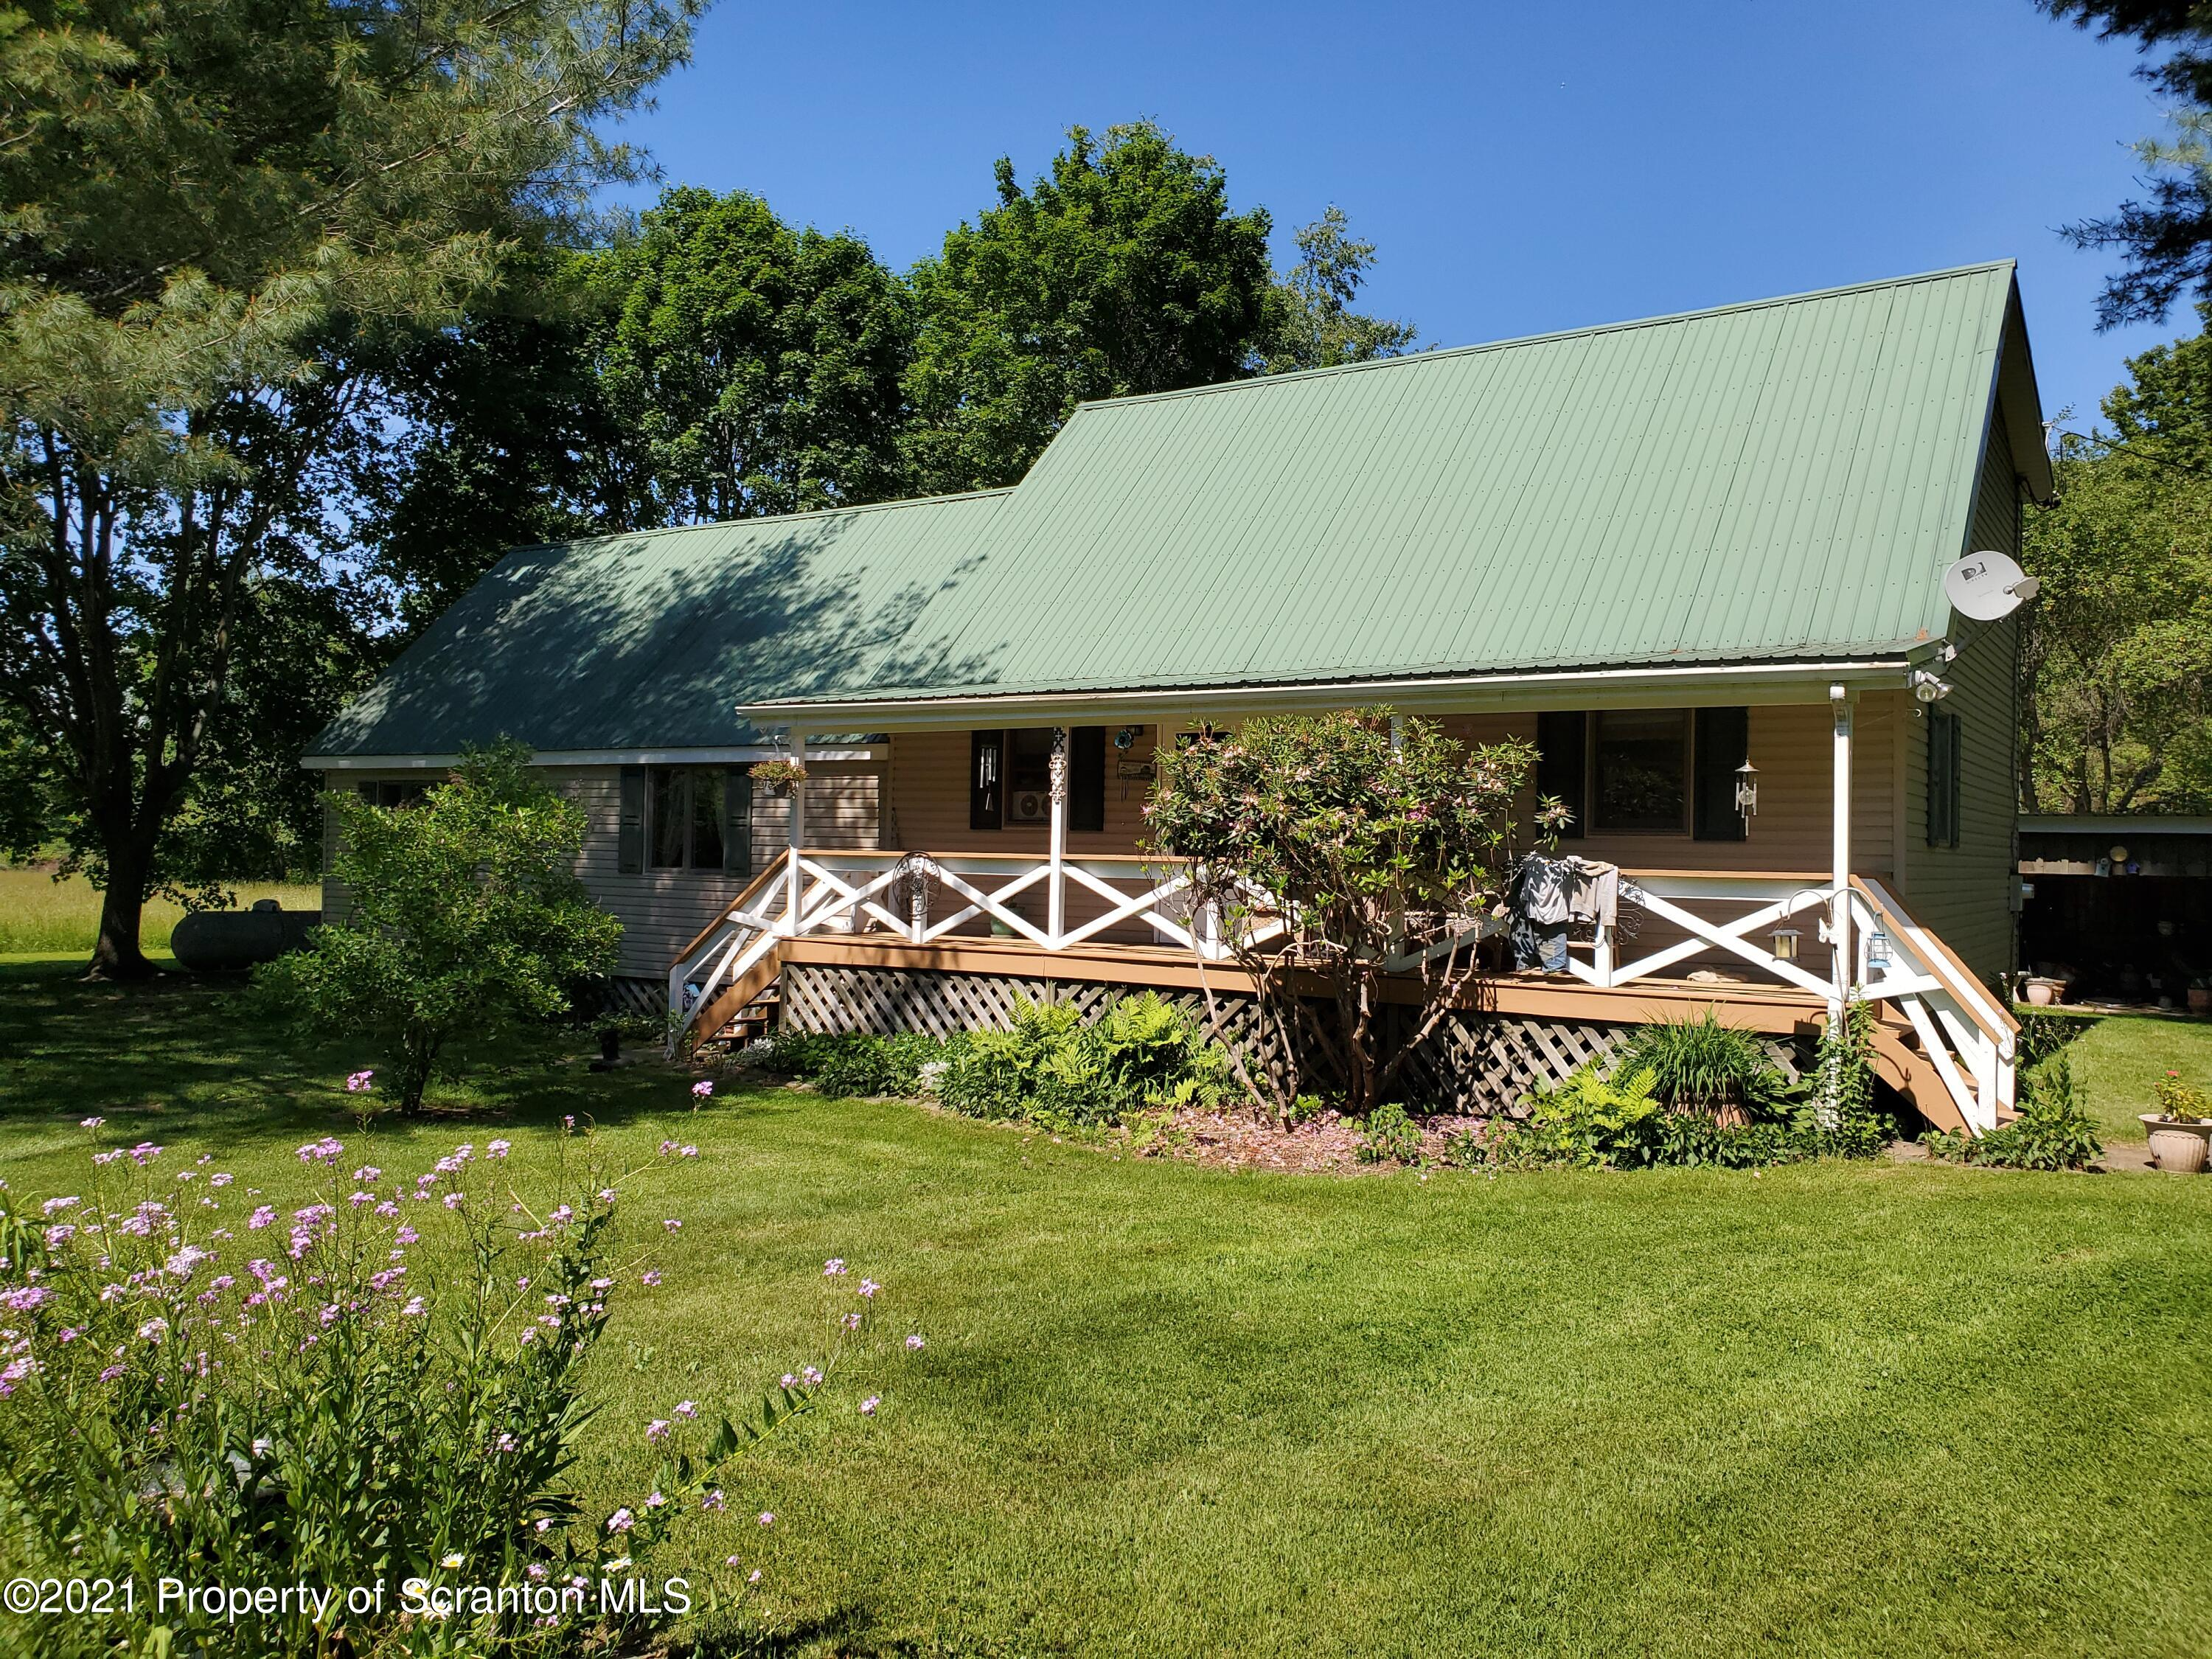 1280 Mitchell Road, Montrose, Pennsylvania 18801, 3 Bedrooms Bedrooms, 7 Rooms Rooms,2 BathroomsBathrooms,Single Family,For Sale,Mitchell Road,21-2531